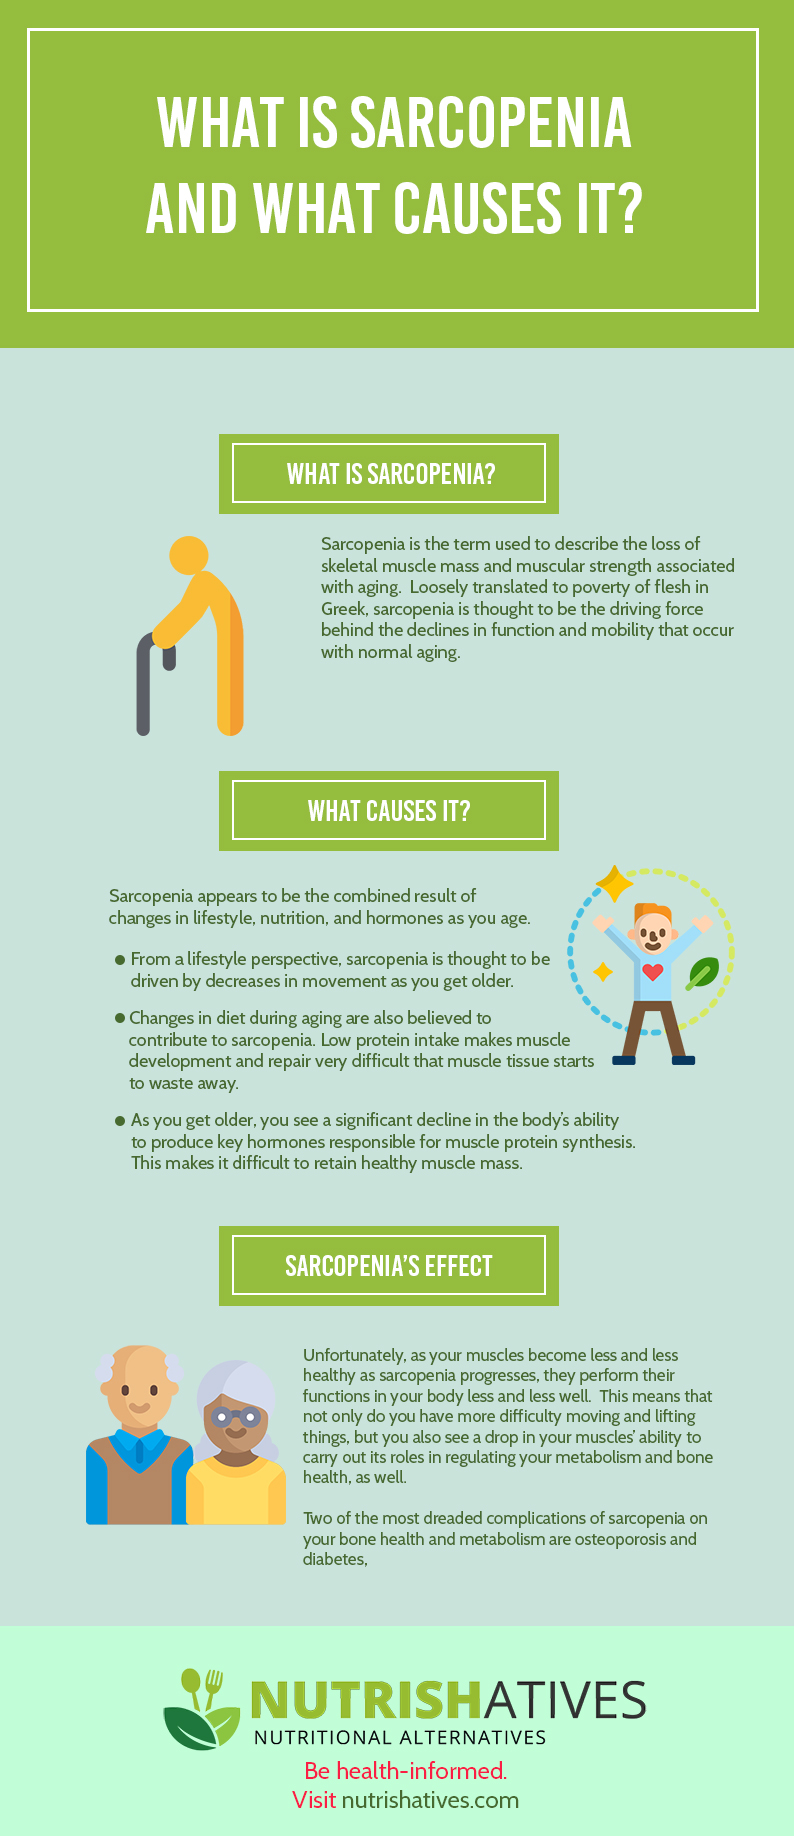 What is sarcopenia and what causes it